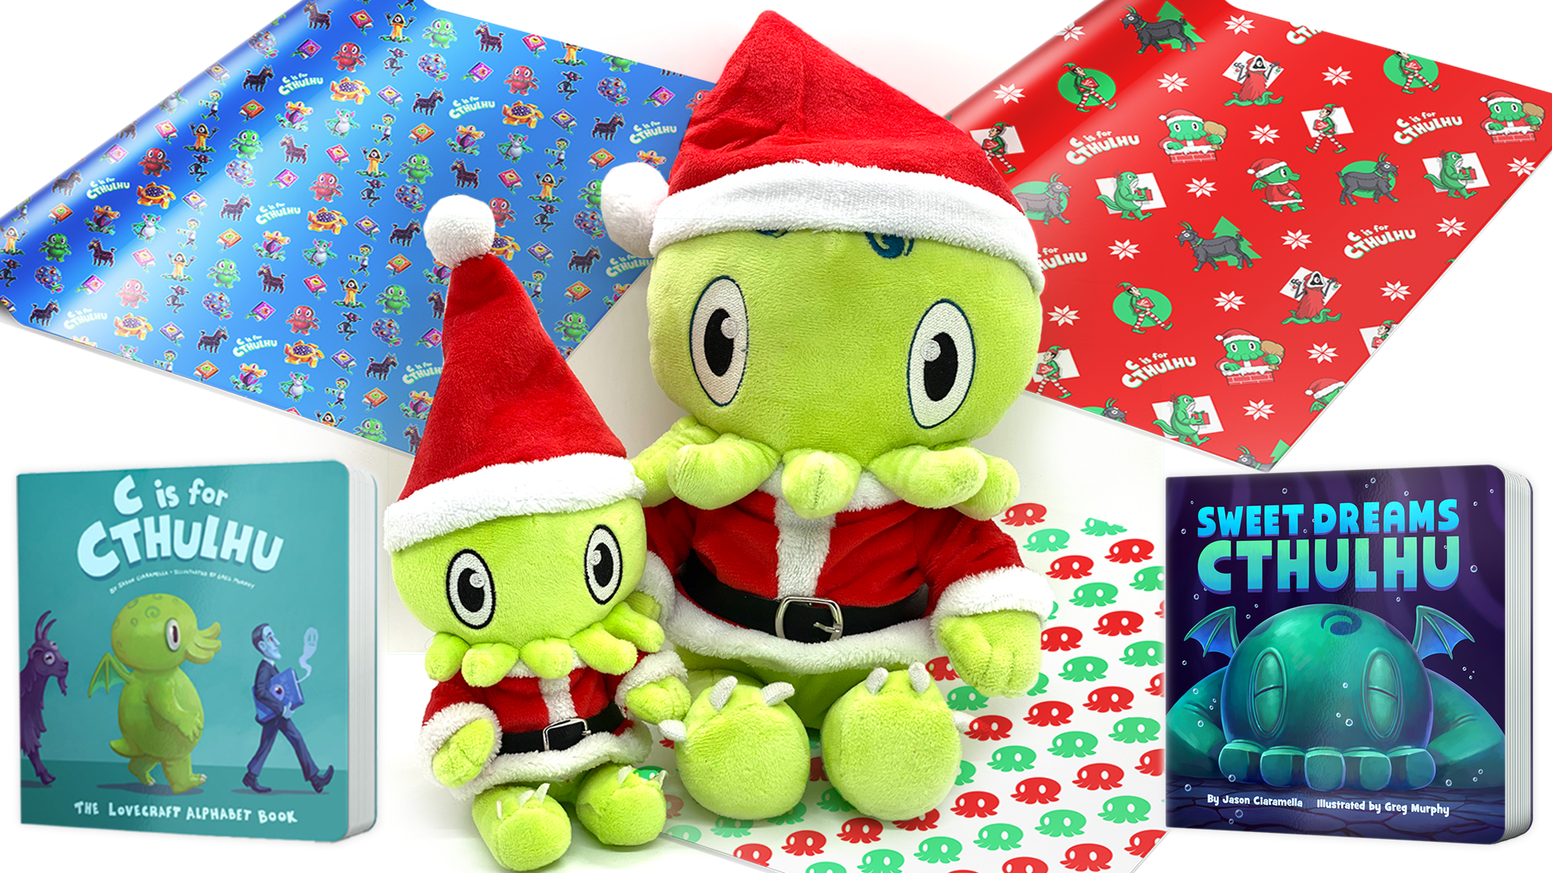 Cuddly new Santa Cthulhu plush toys, festive Lovecraft themed wrapping paper & beloved children's books, in time for the holidays!